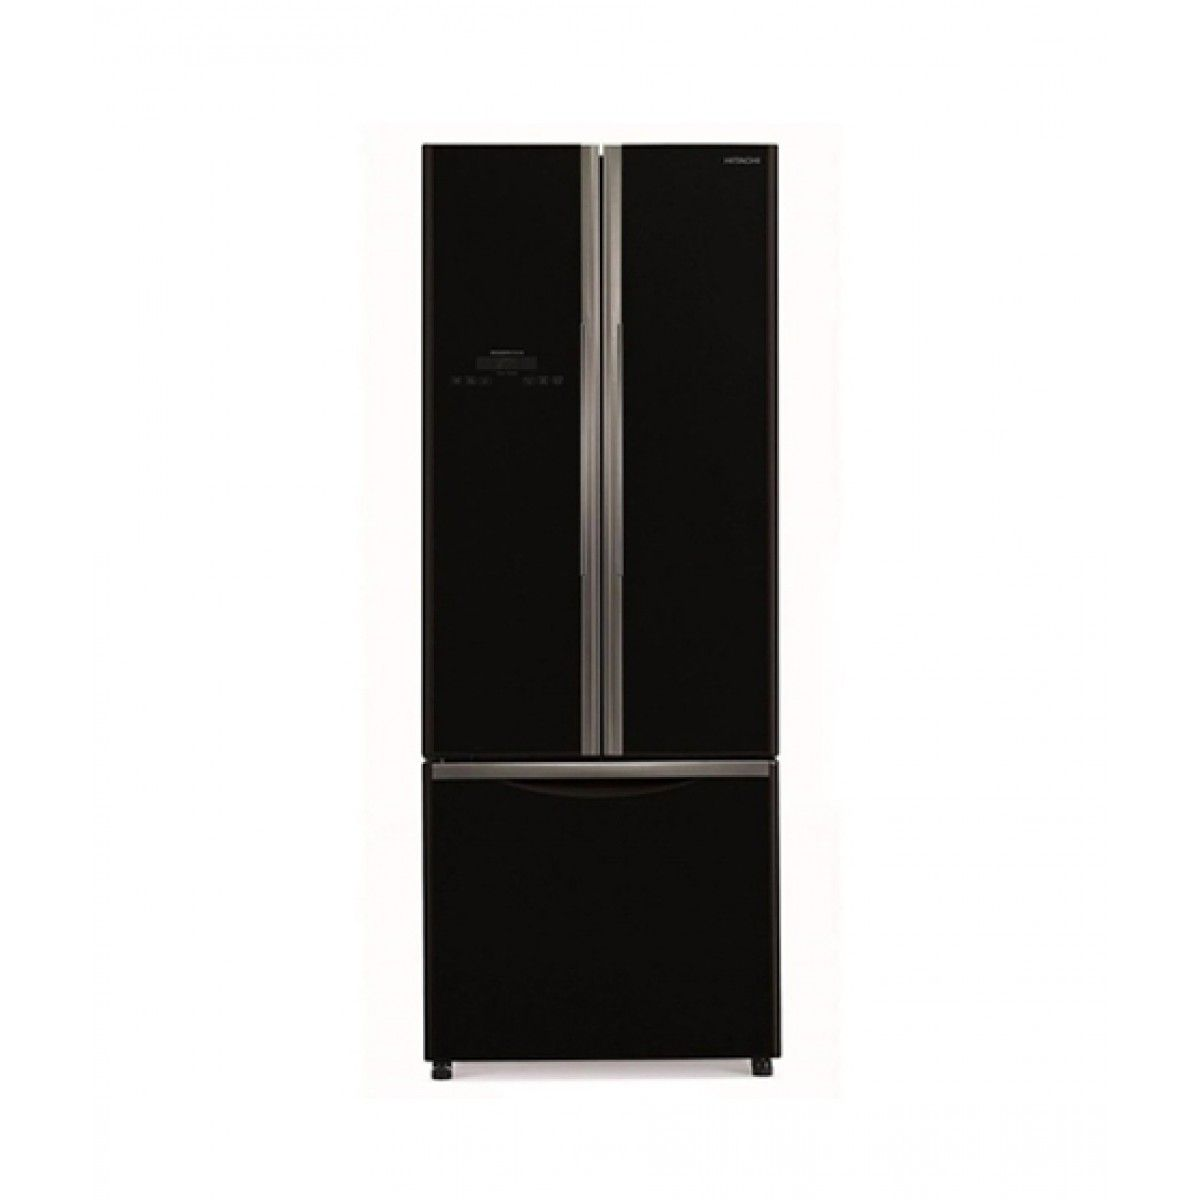 Hitachi (R-WB560P2PB) Freezer-on-Bottom 18 cu ft Refrigerator